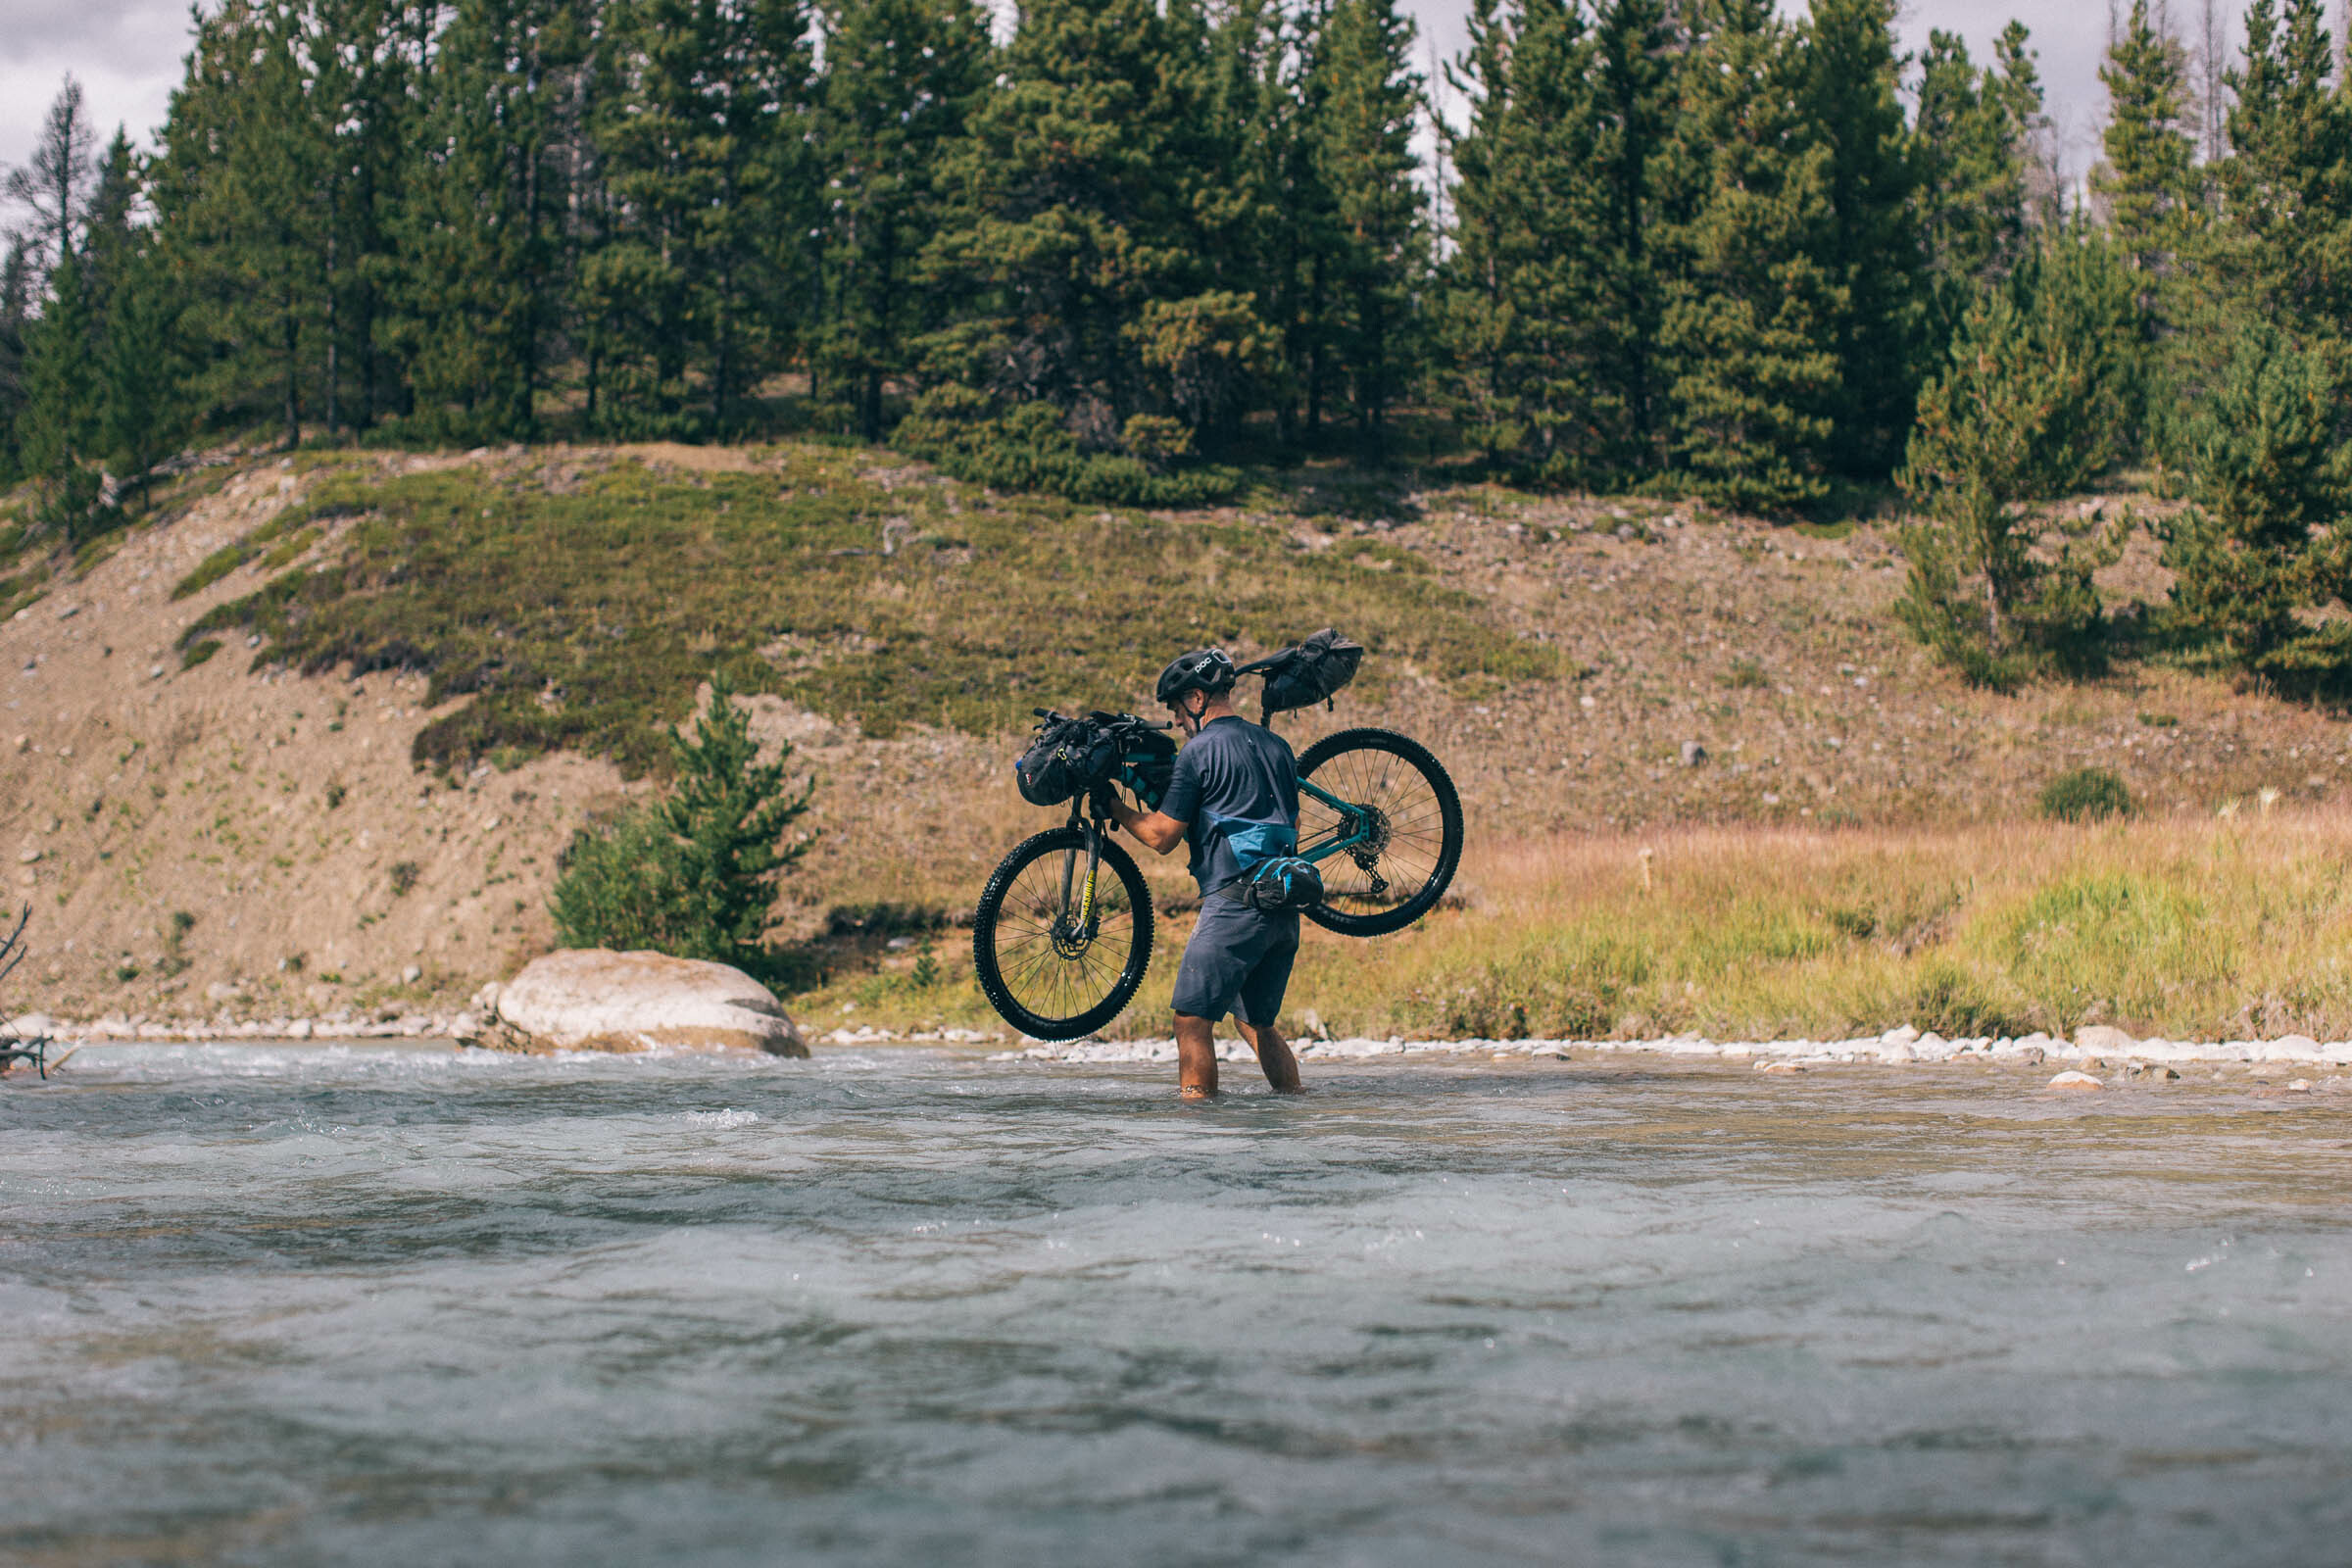 River crossing with a bicycle in Canada, photo by Miles Arbour